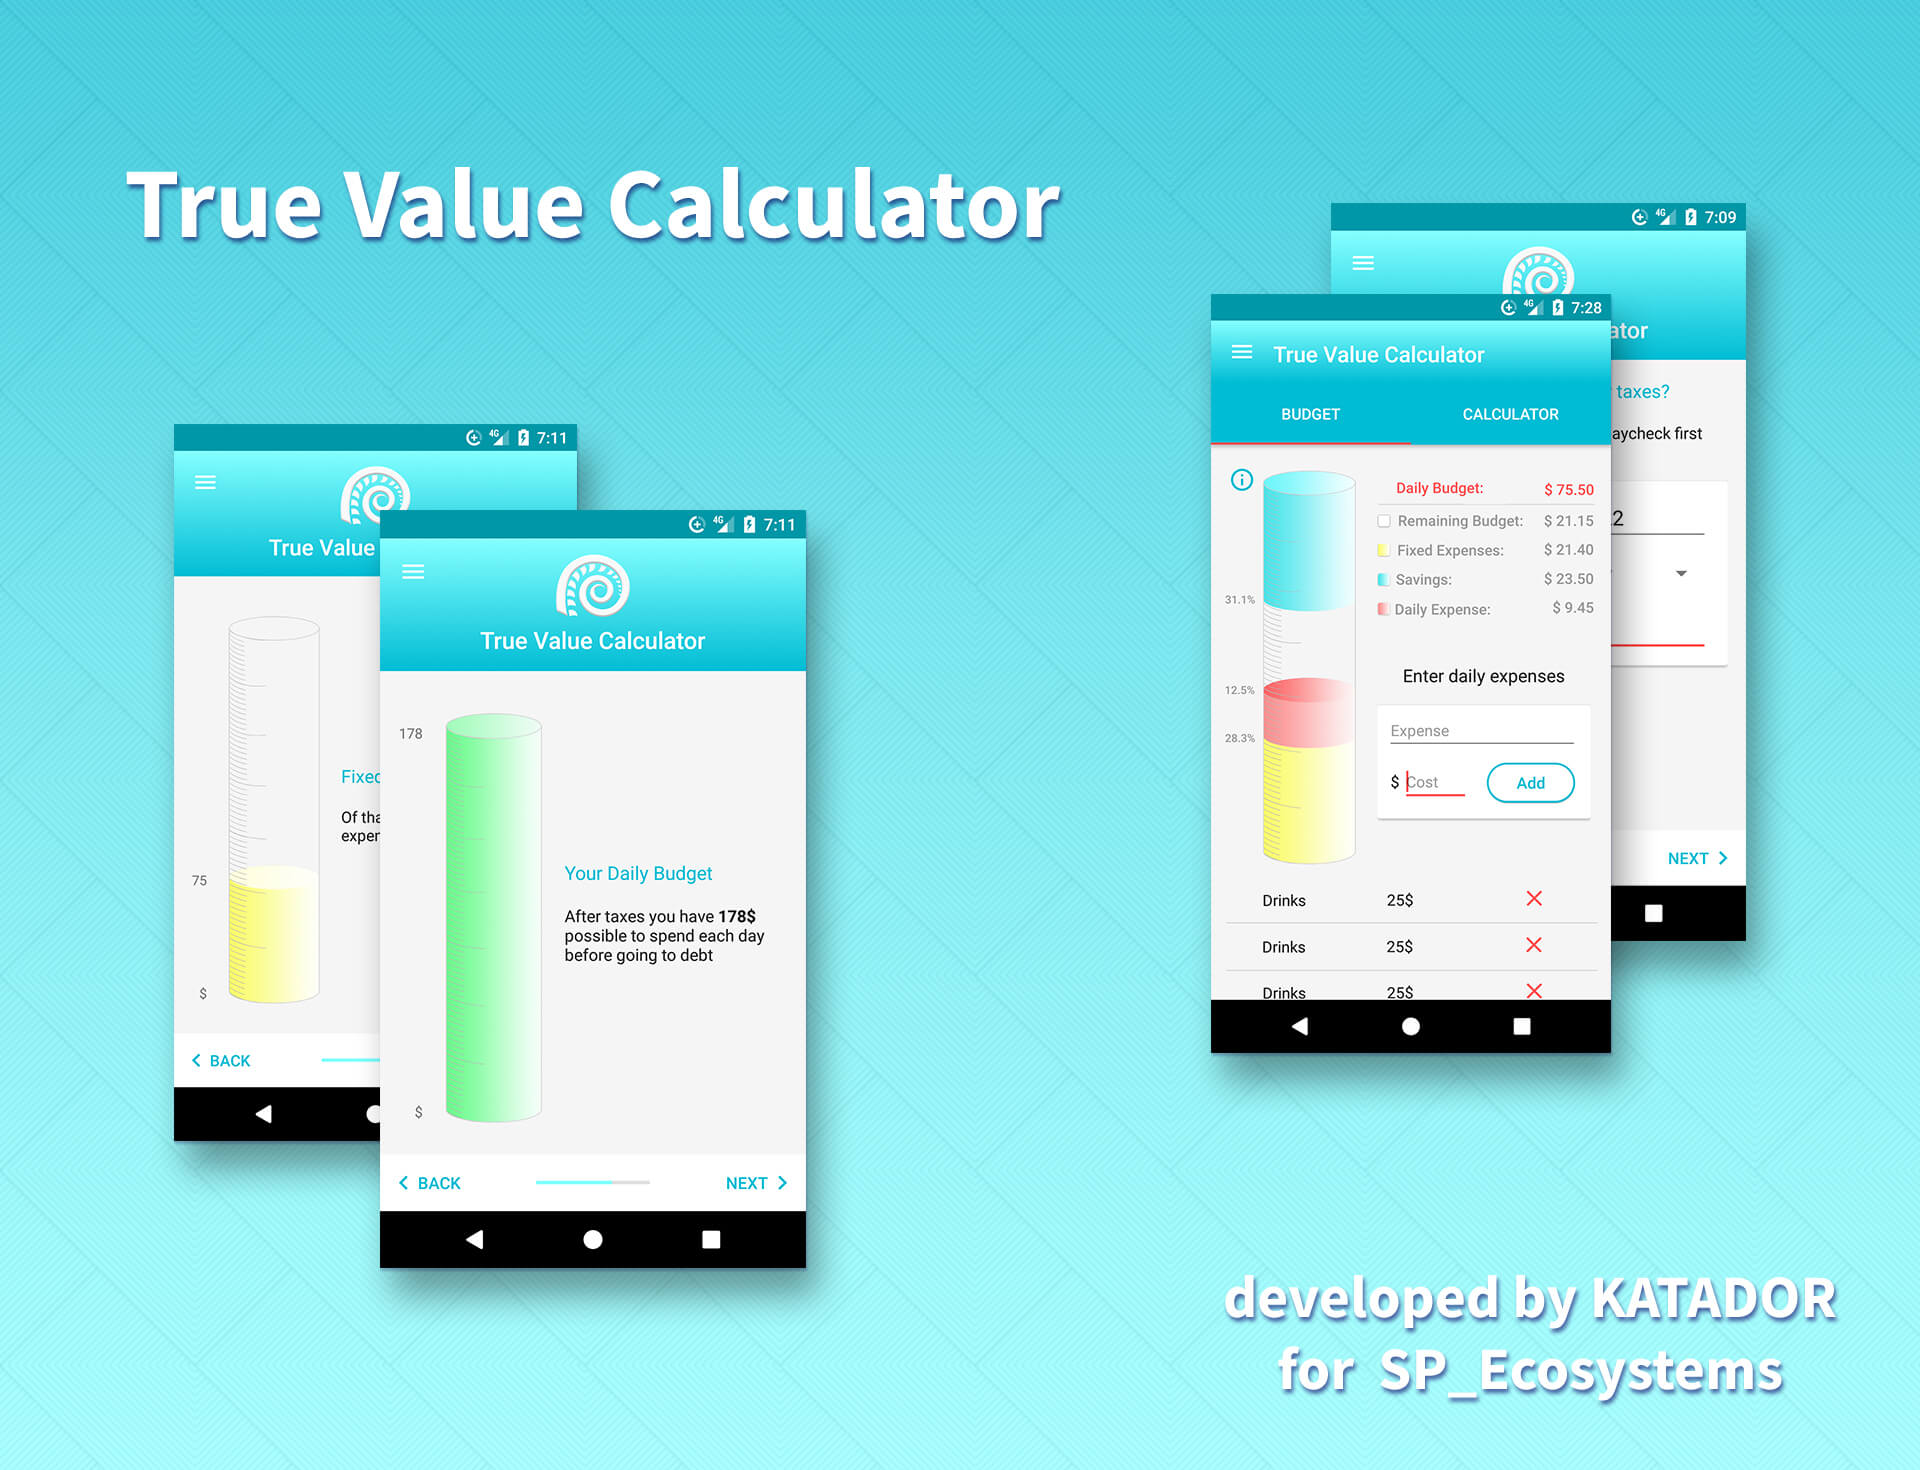 true value calculator detailsl